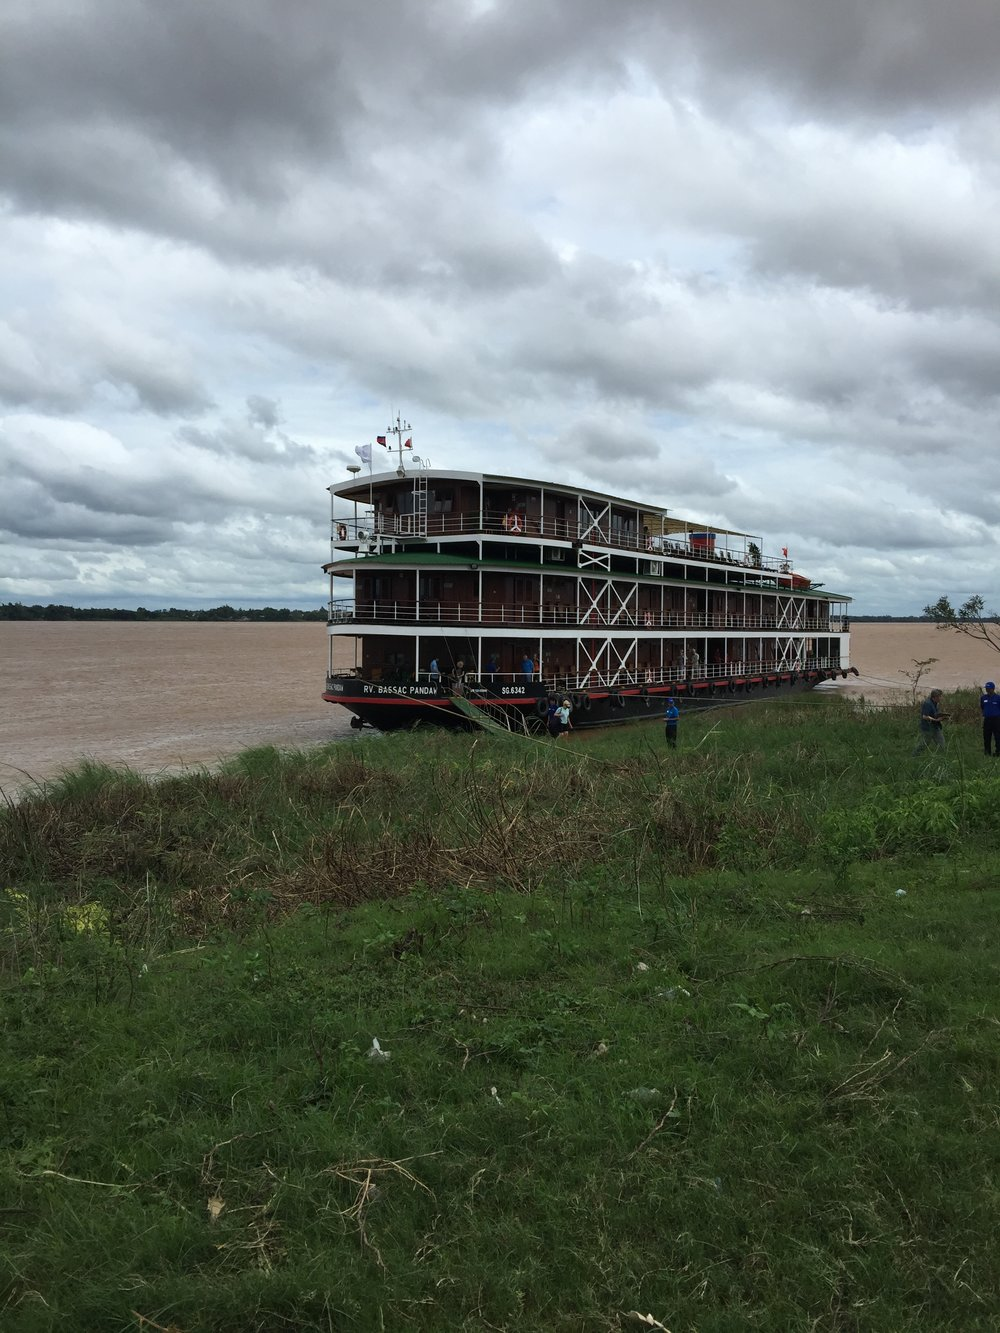 Cruising the Mekong River, Vietnam